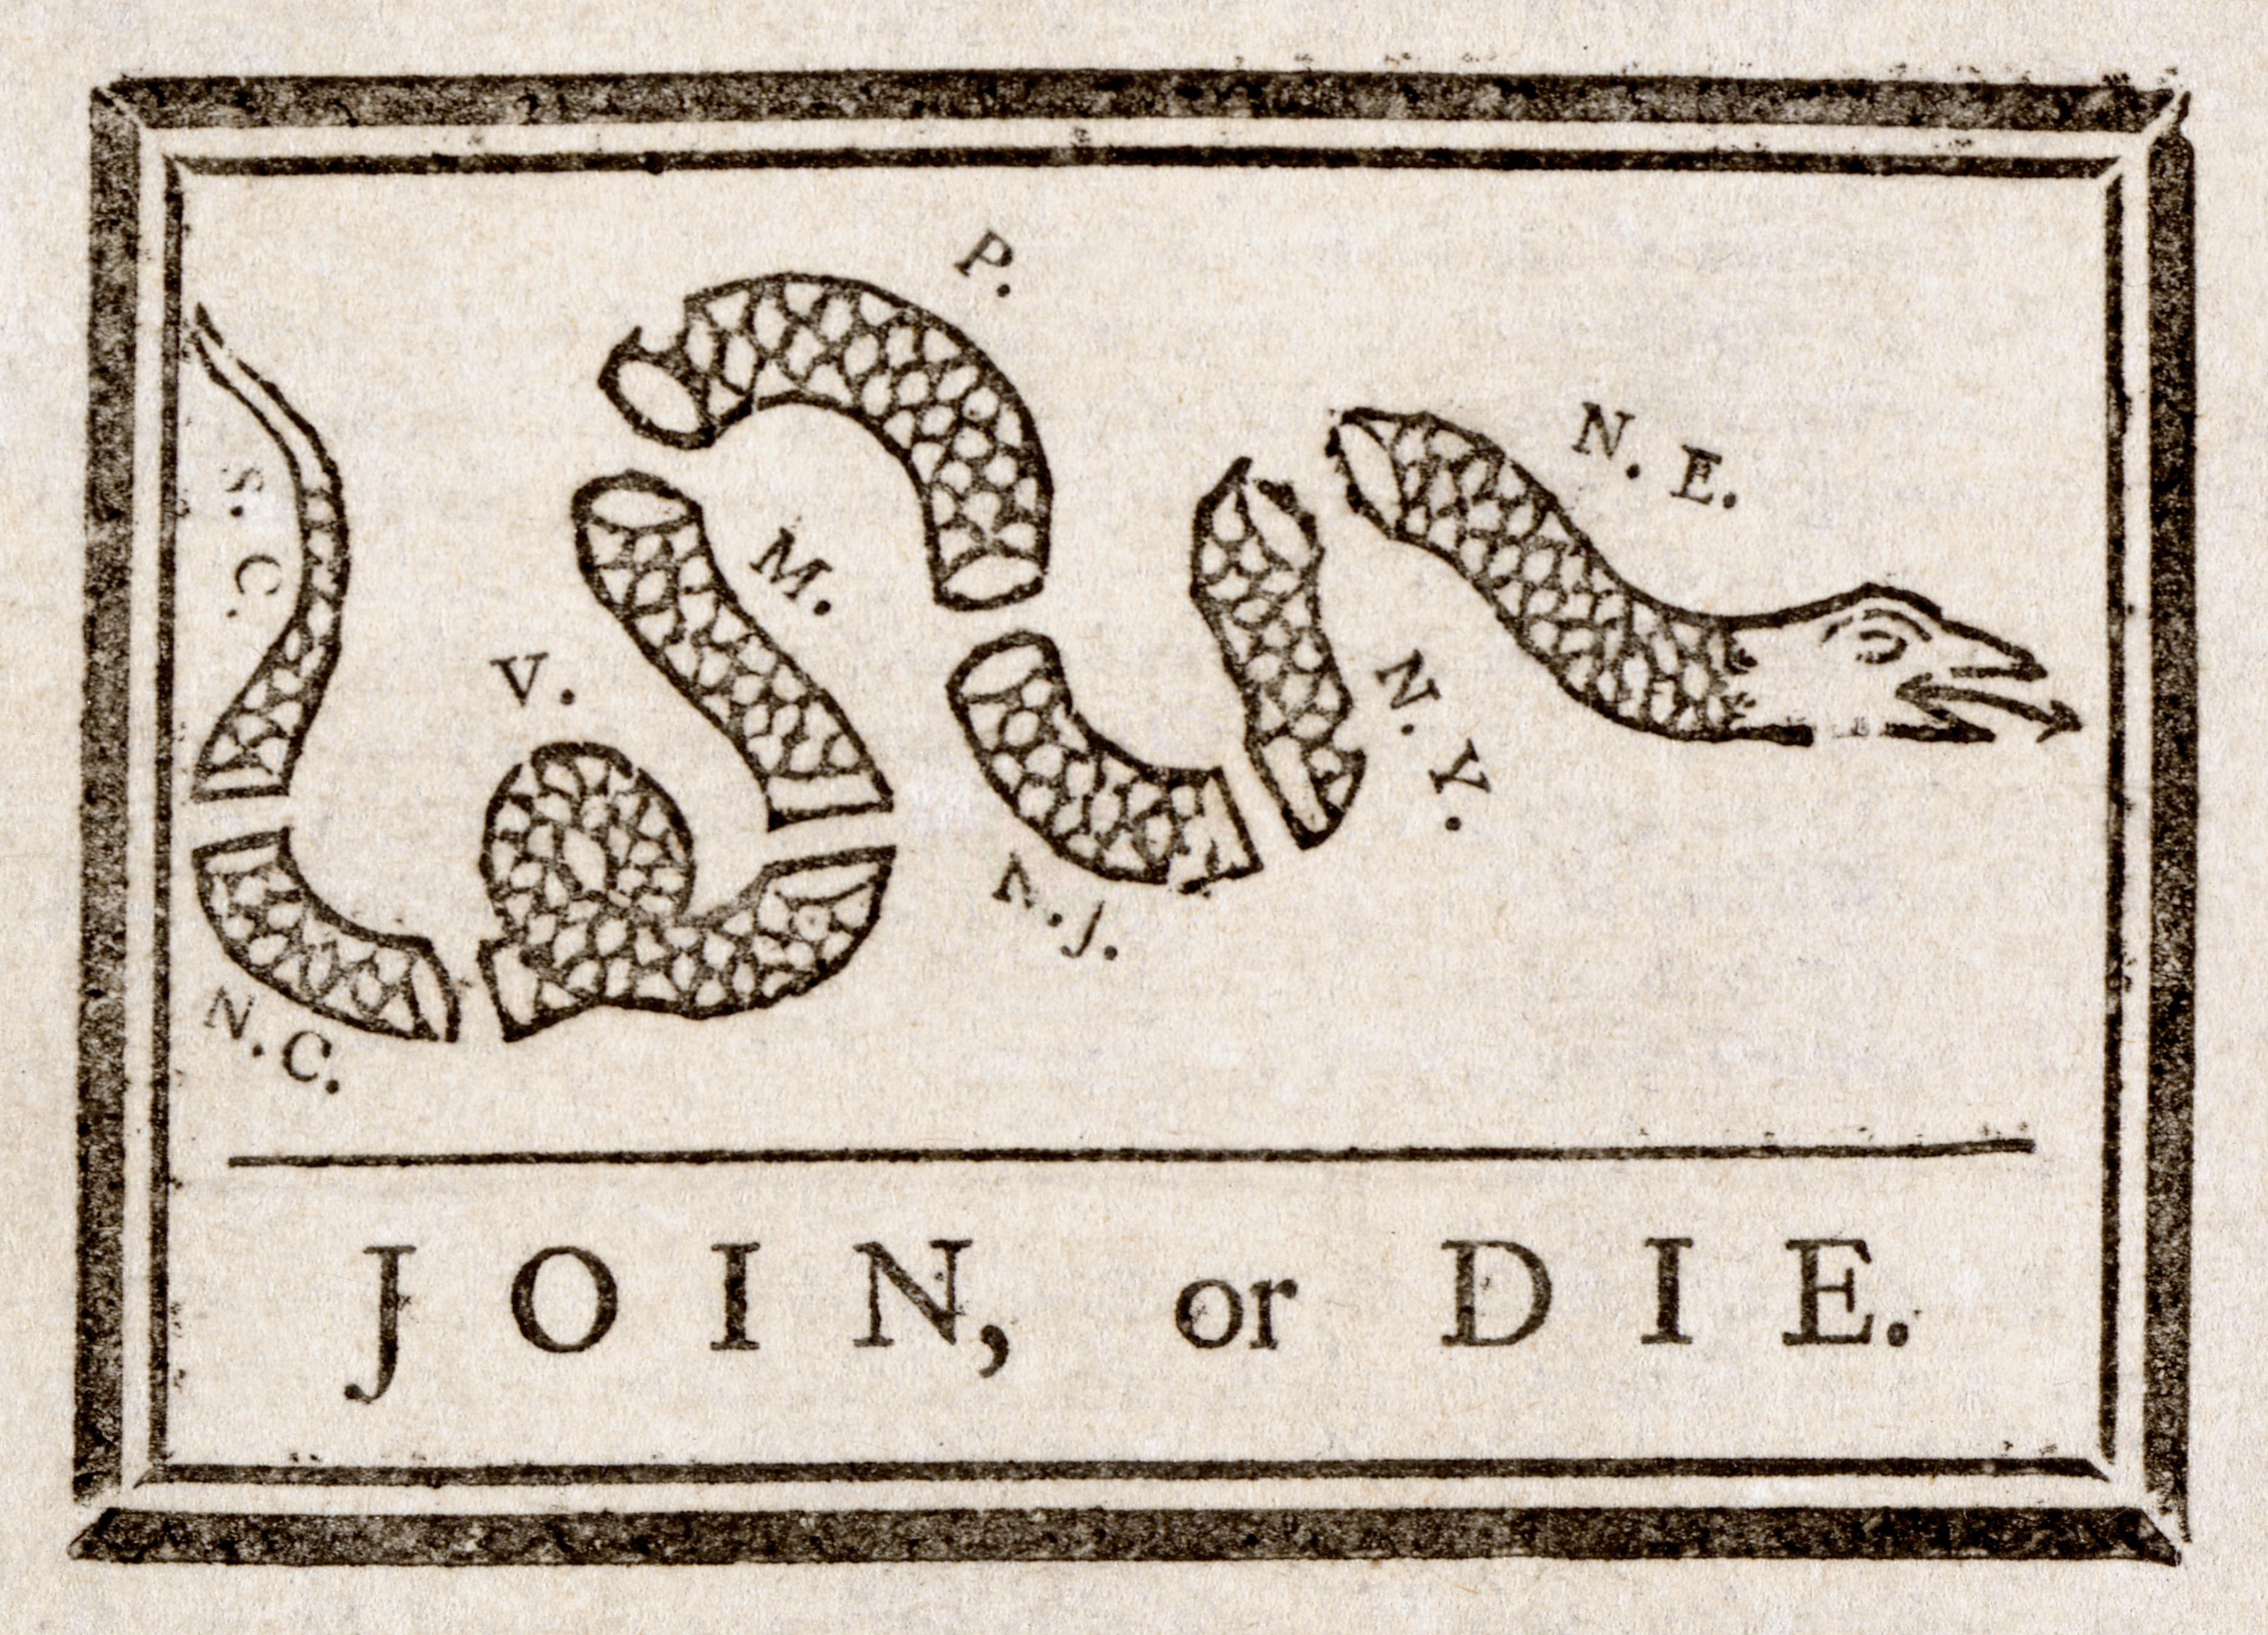 Join or die wikipedia. Intolerable acts clipart battle scene